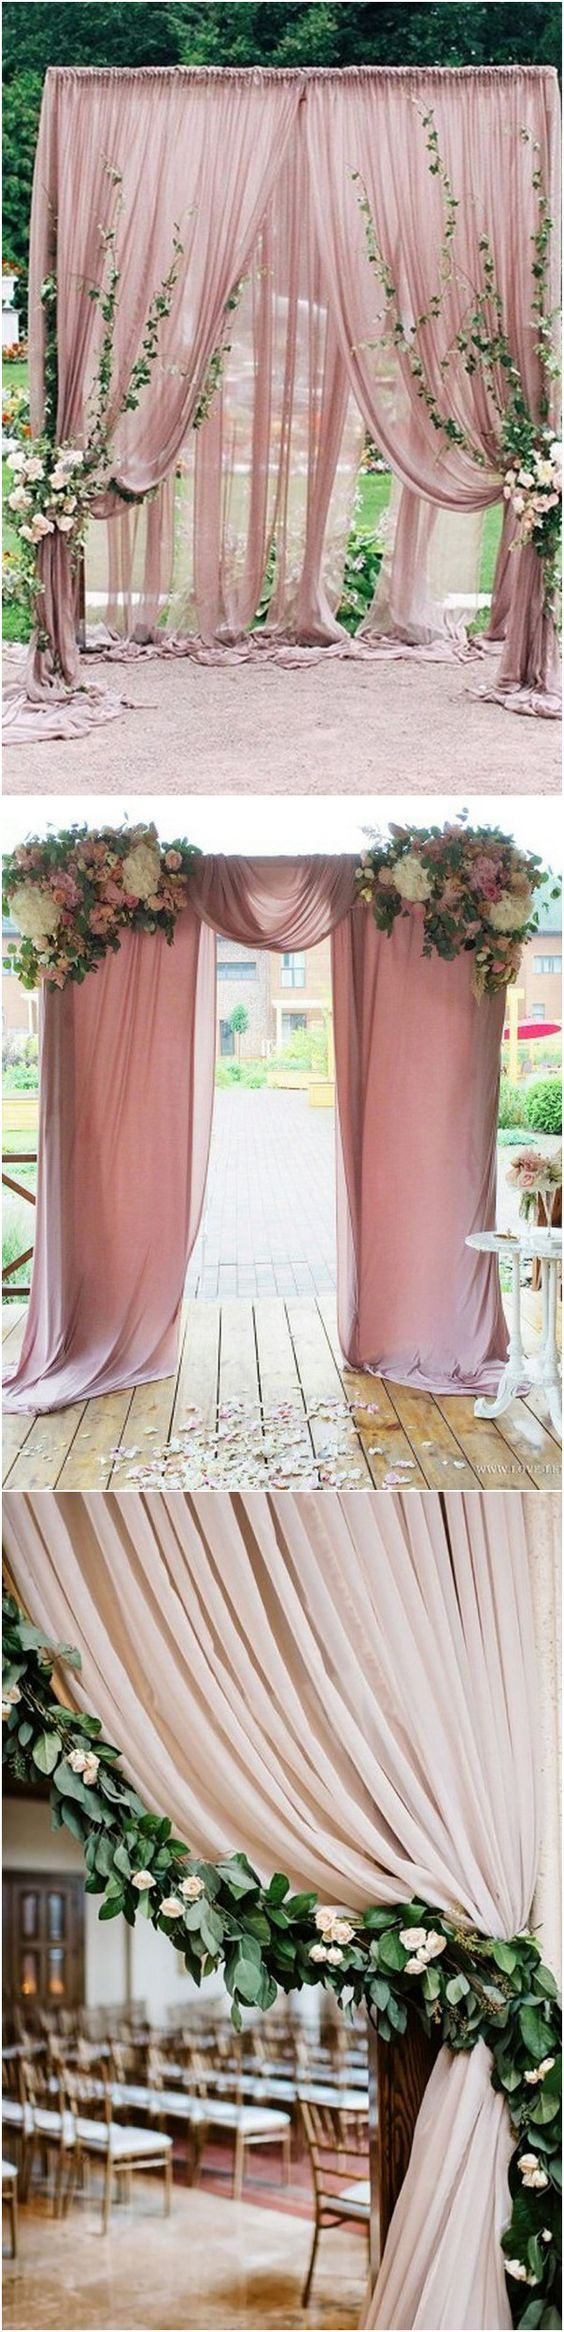 Wedding decorations arch december 2018 loveisforever like and repin favorite love pictures of marriage